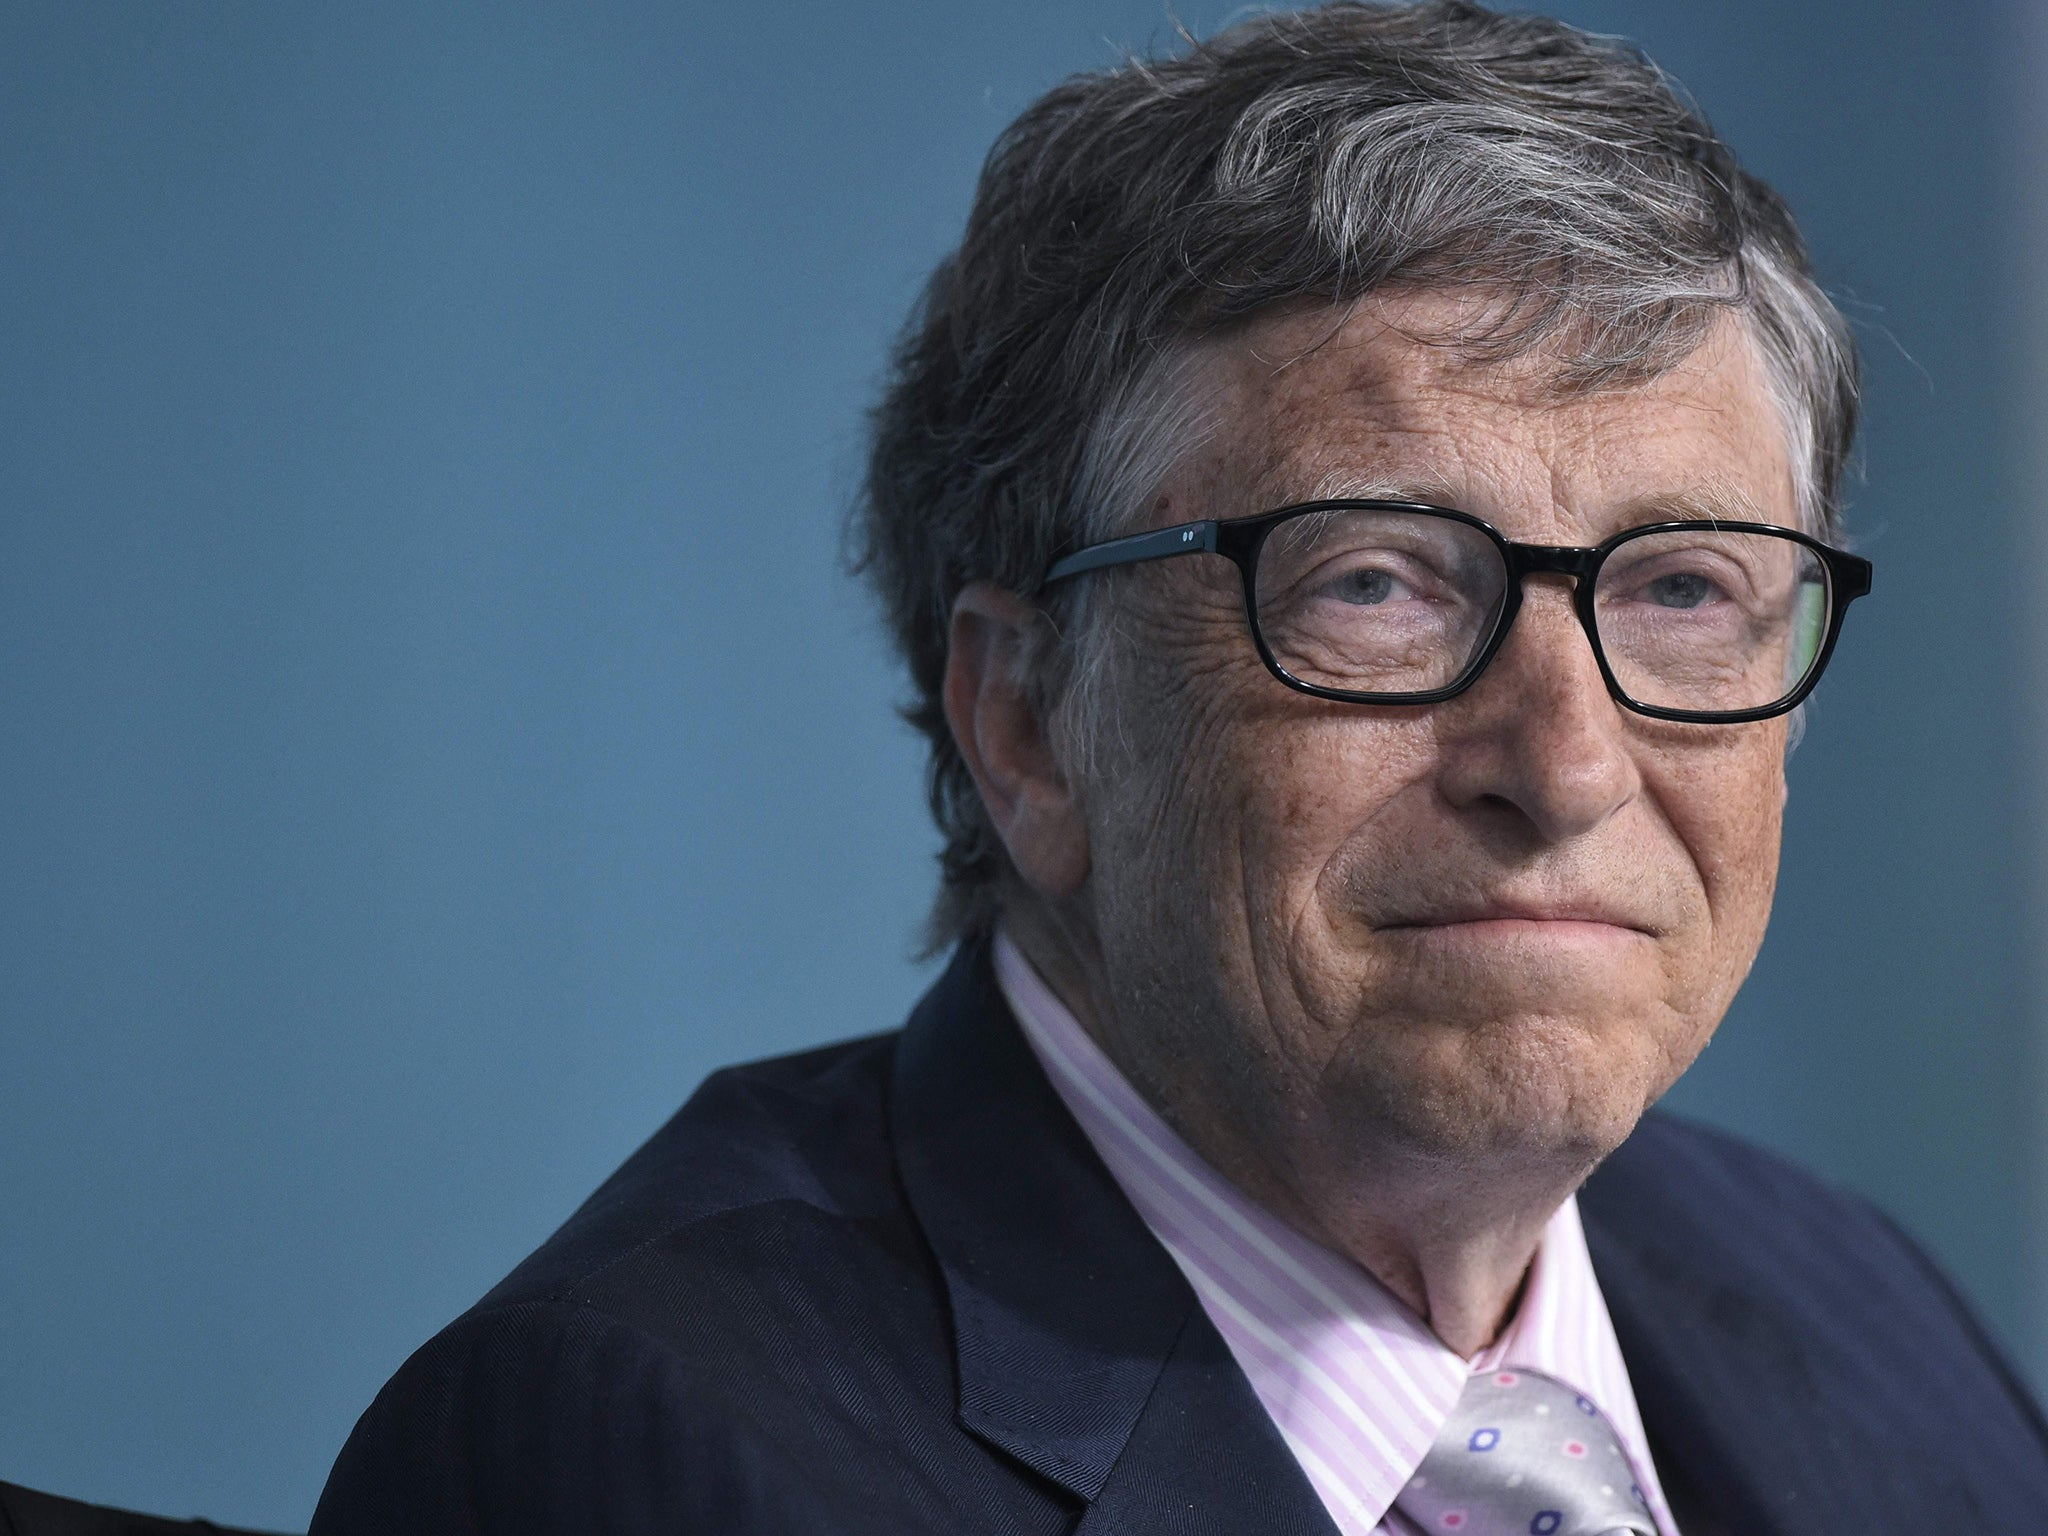 bill gates says three skills are essential for success in future bill gates says three skills are essential for success in future job market the independent